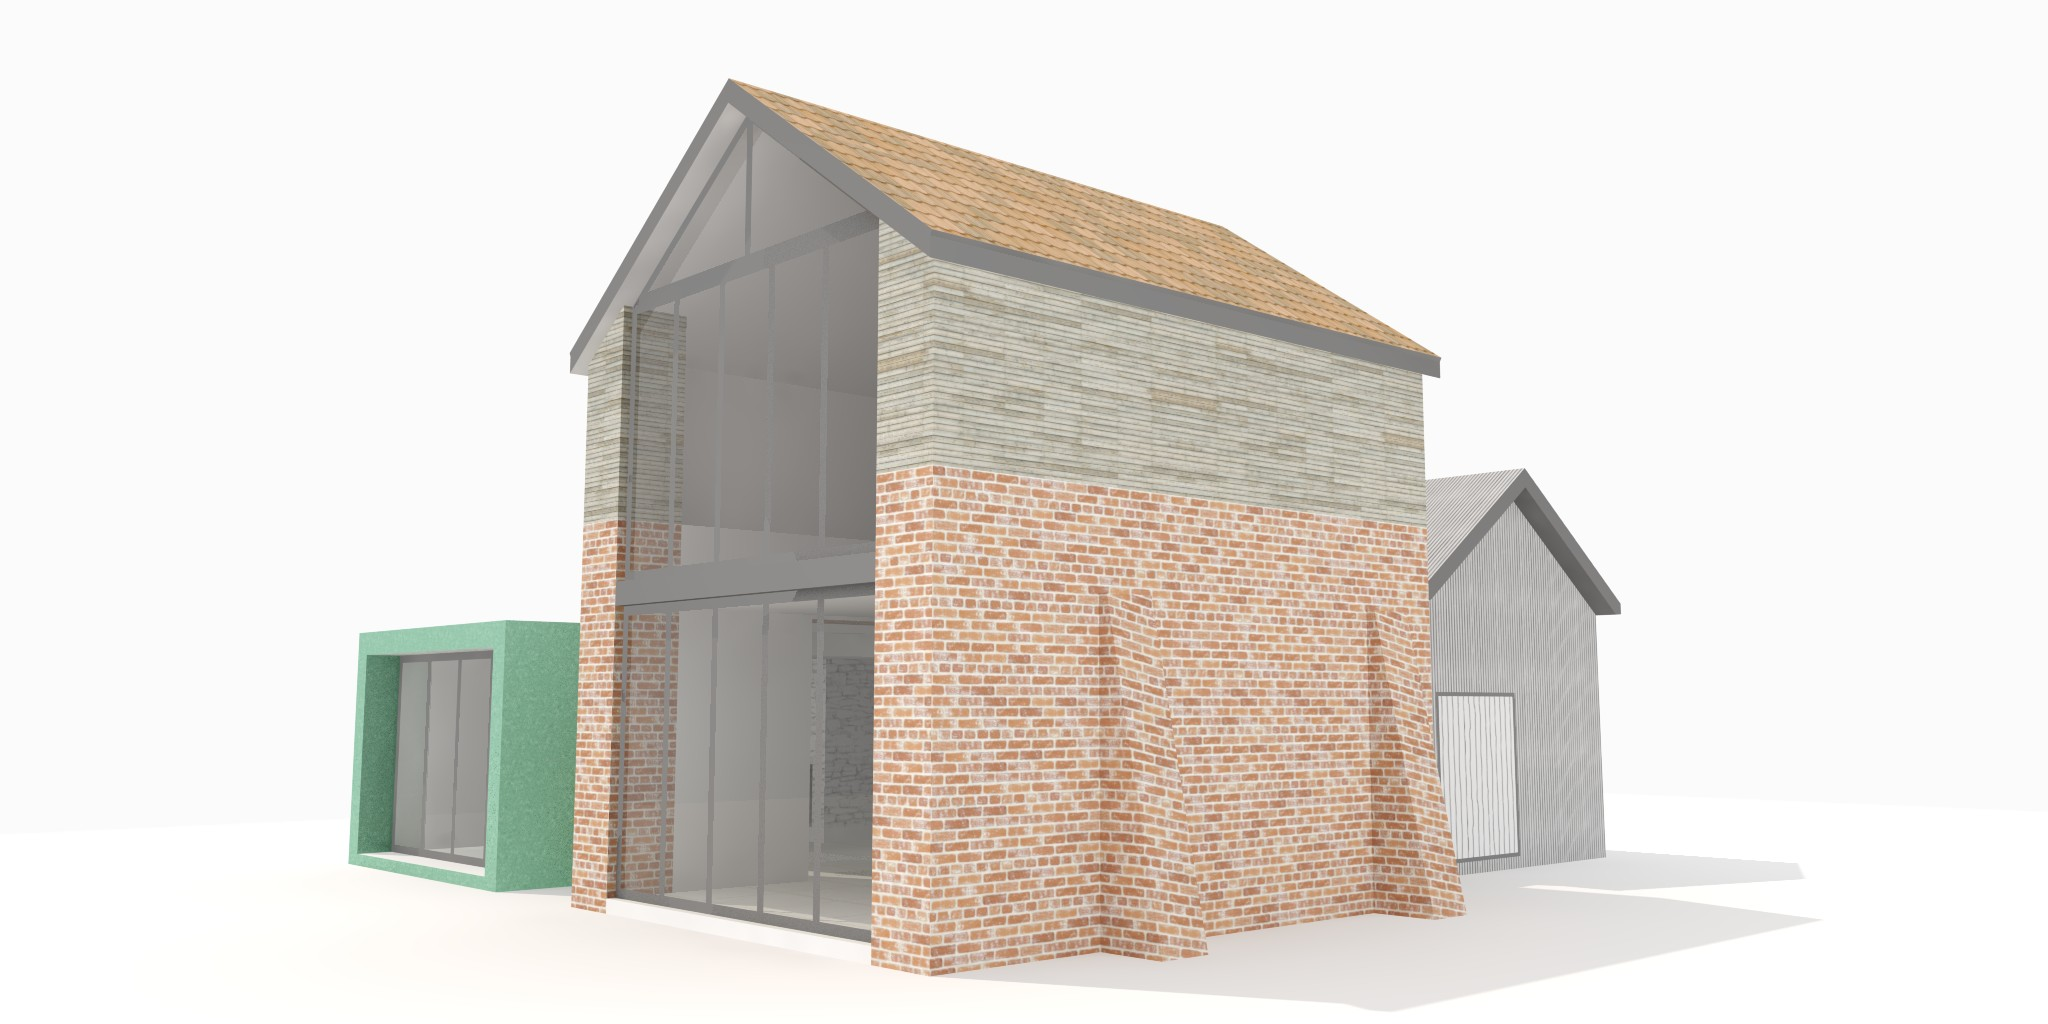 Mix of materials, patinated copper sheeting, brick, oak cladding and black corrugated metal sheeting